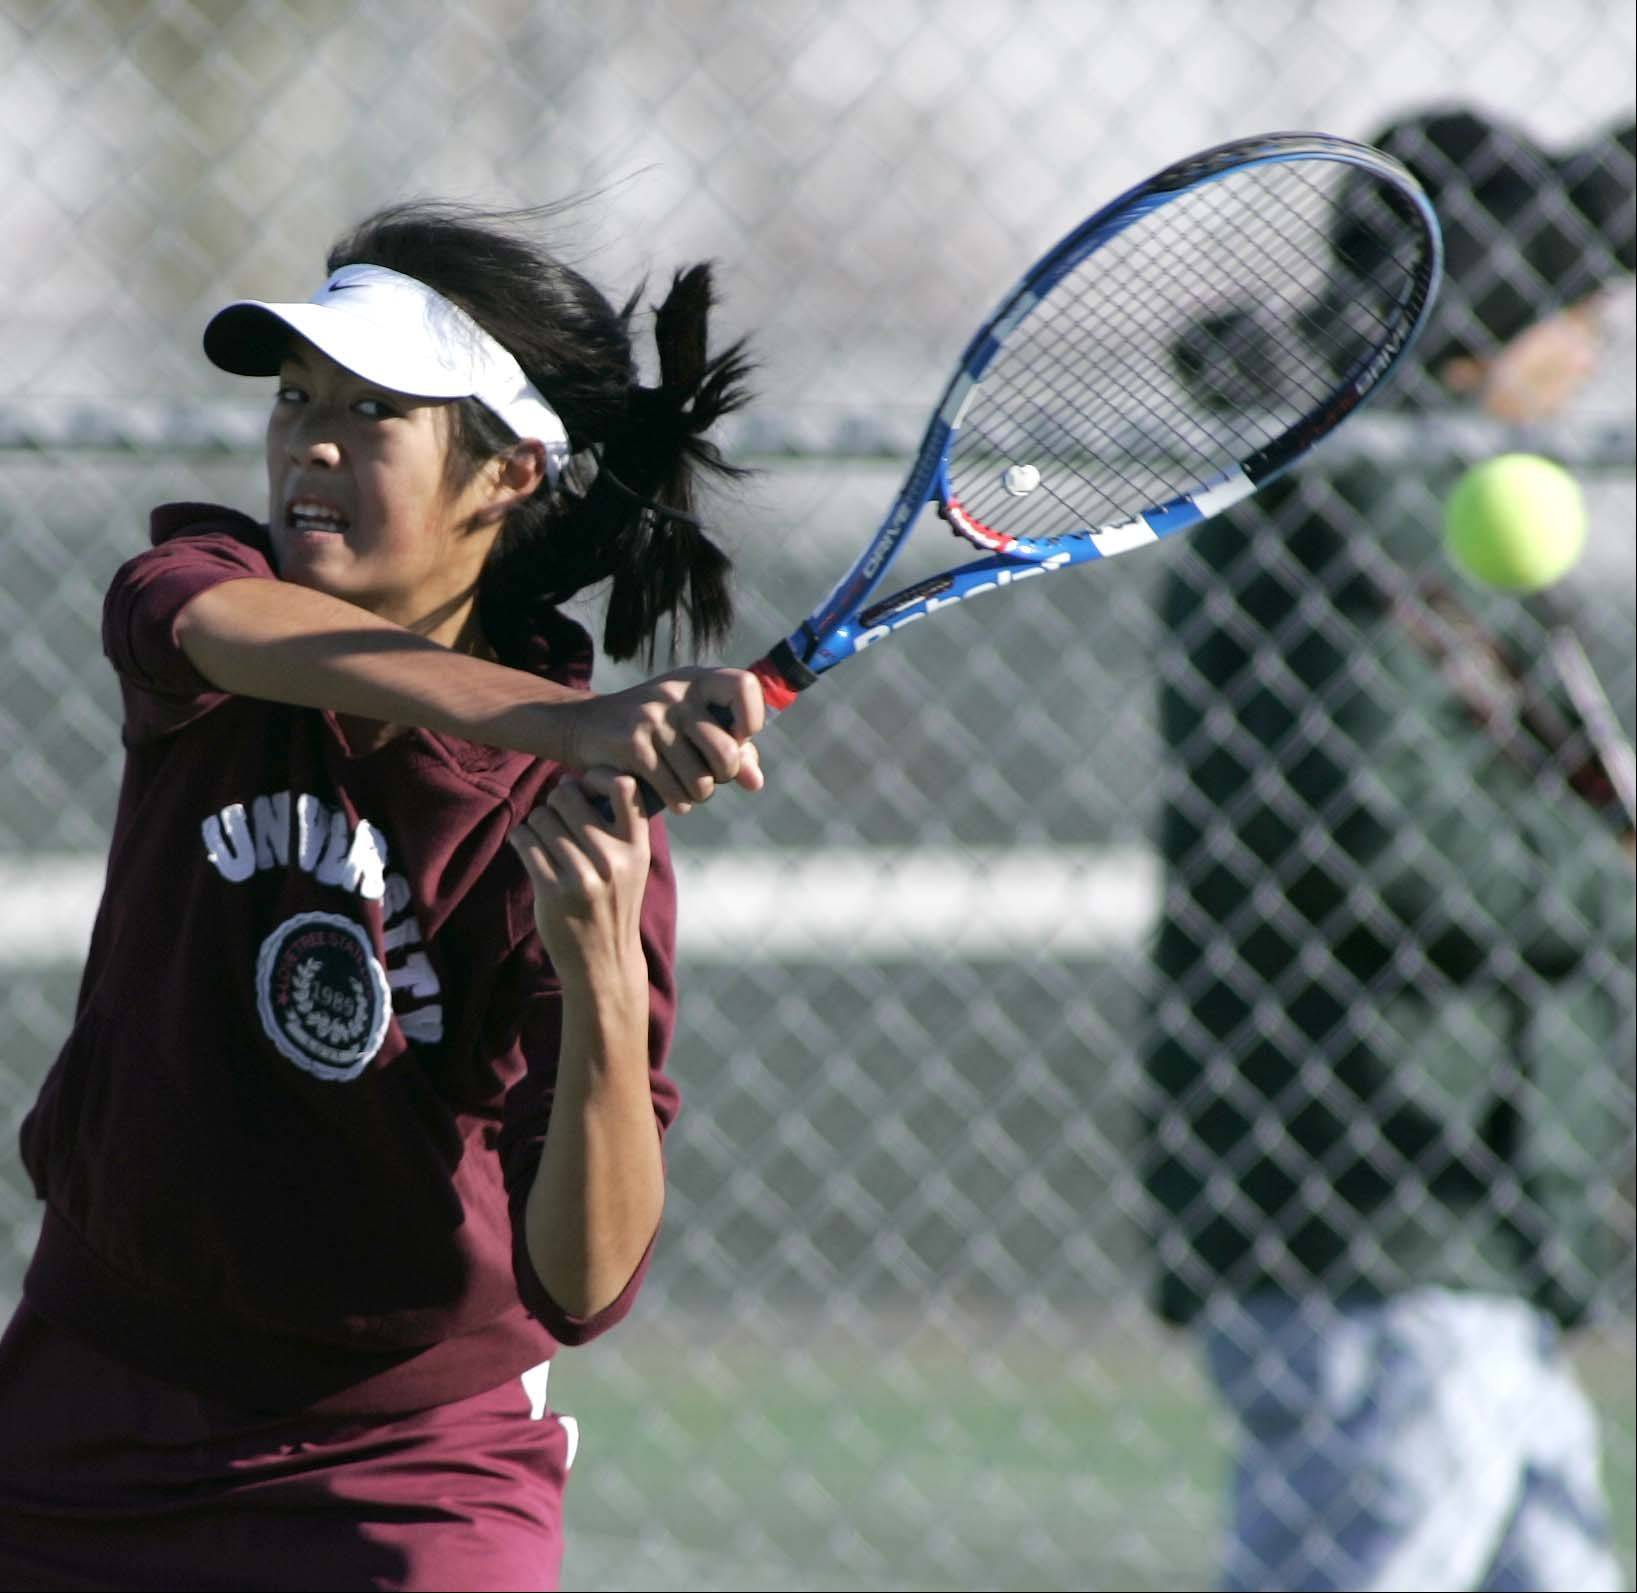 Elgin's Dahlia Keonavongsa qualified for state last season as a freshman.